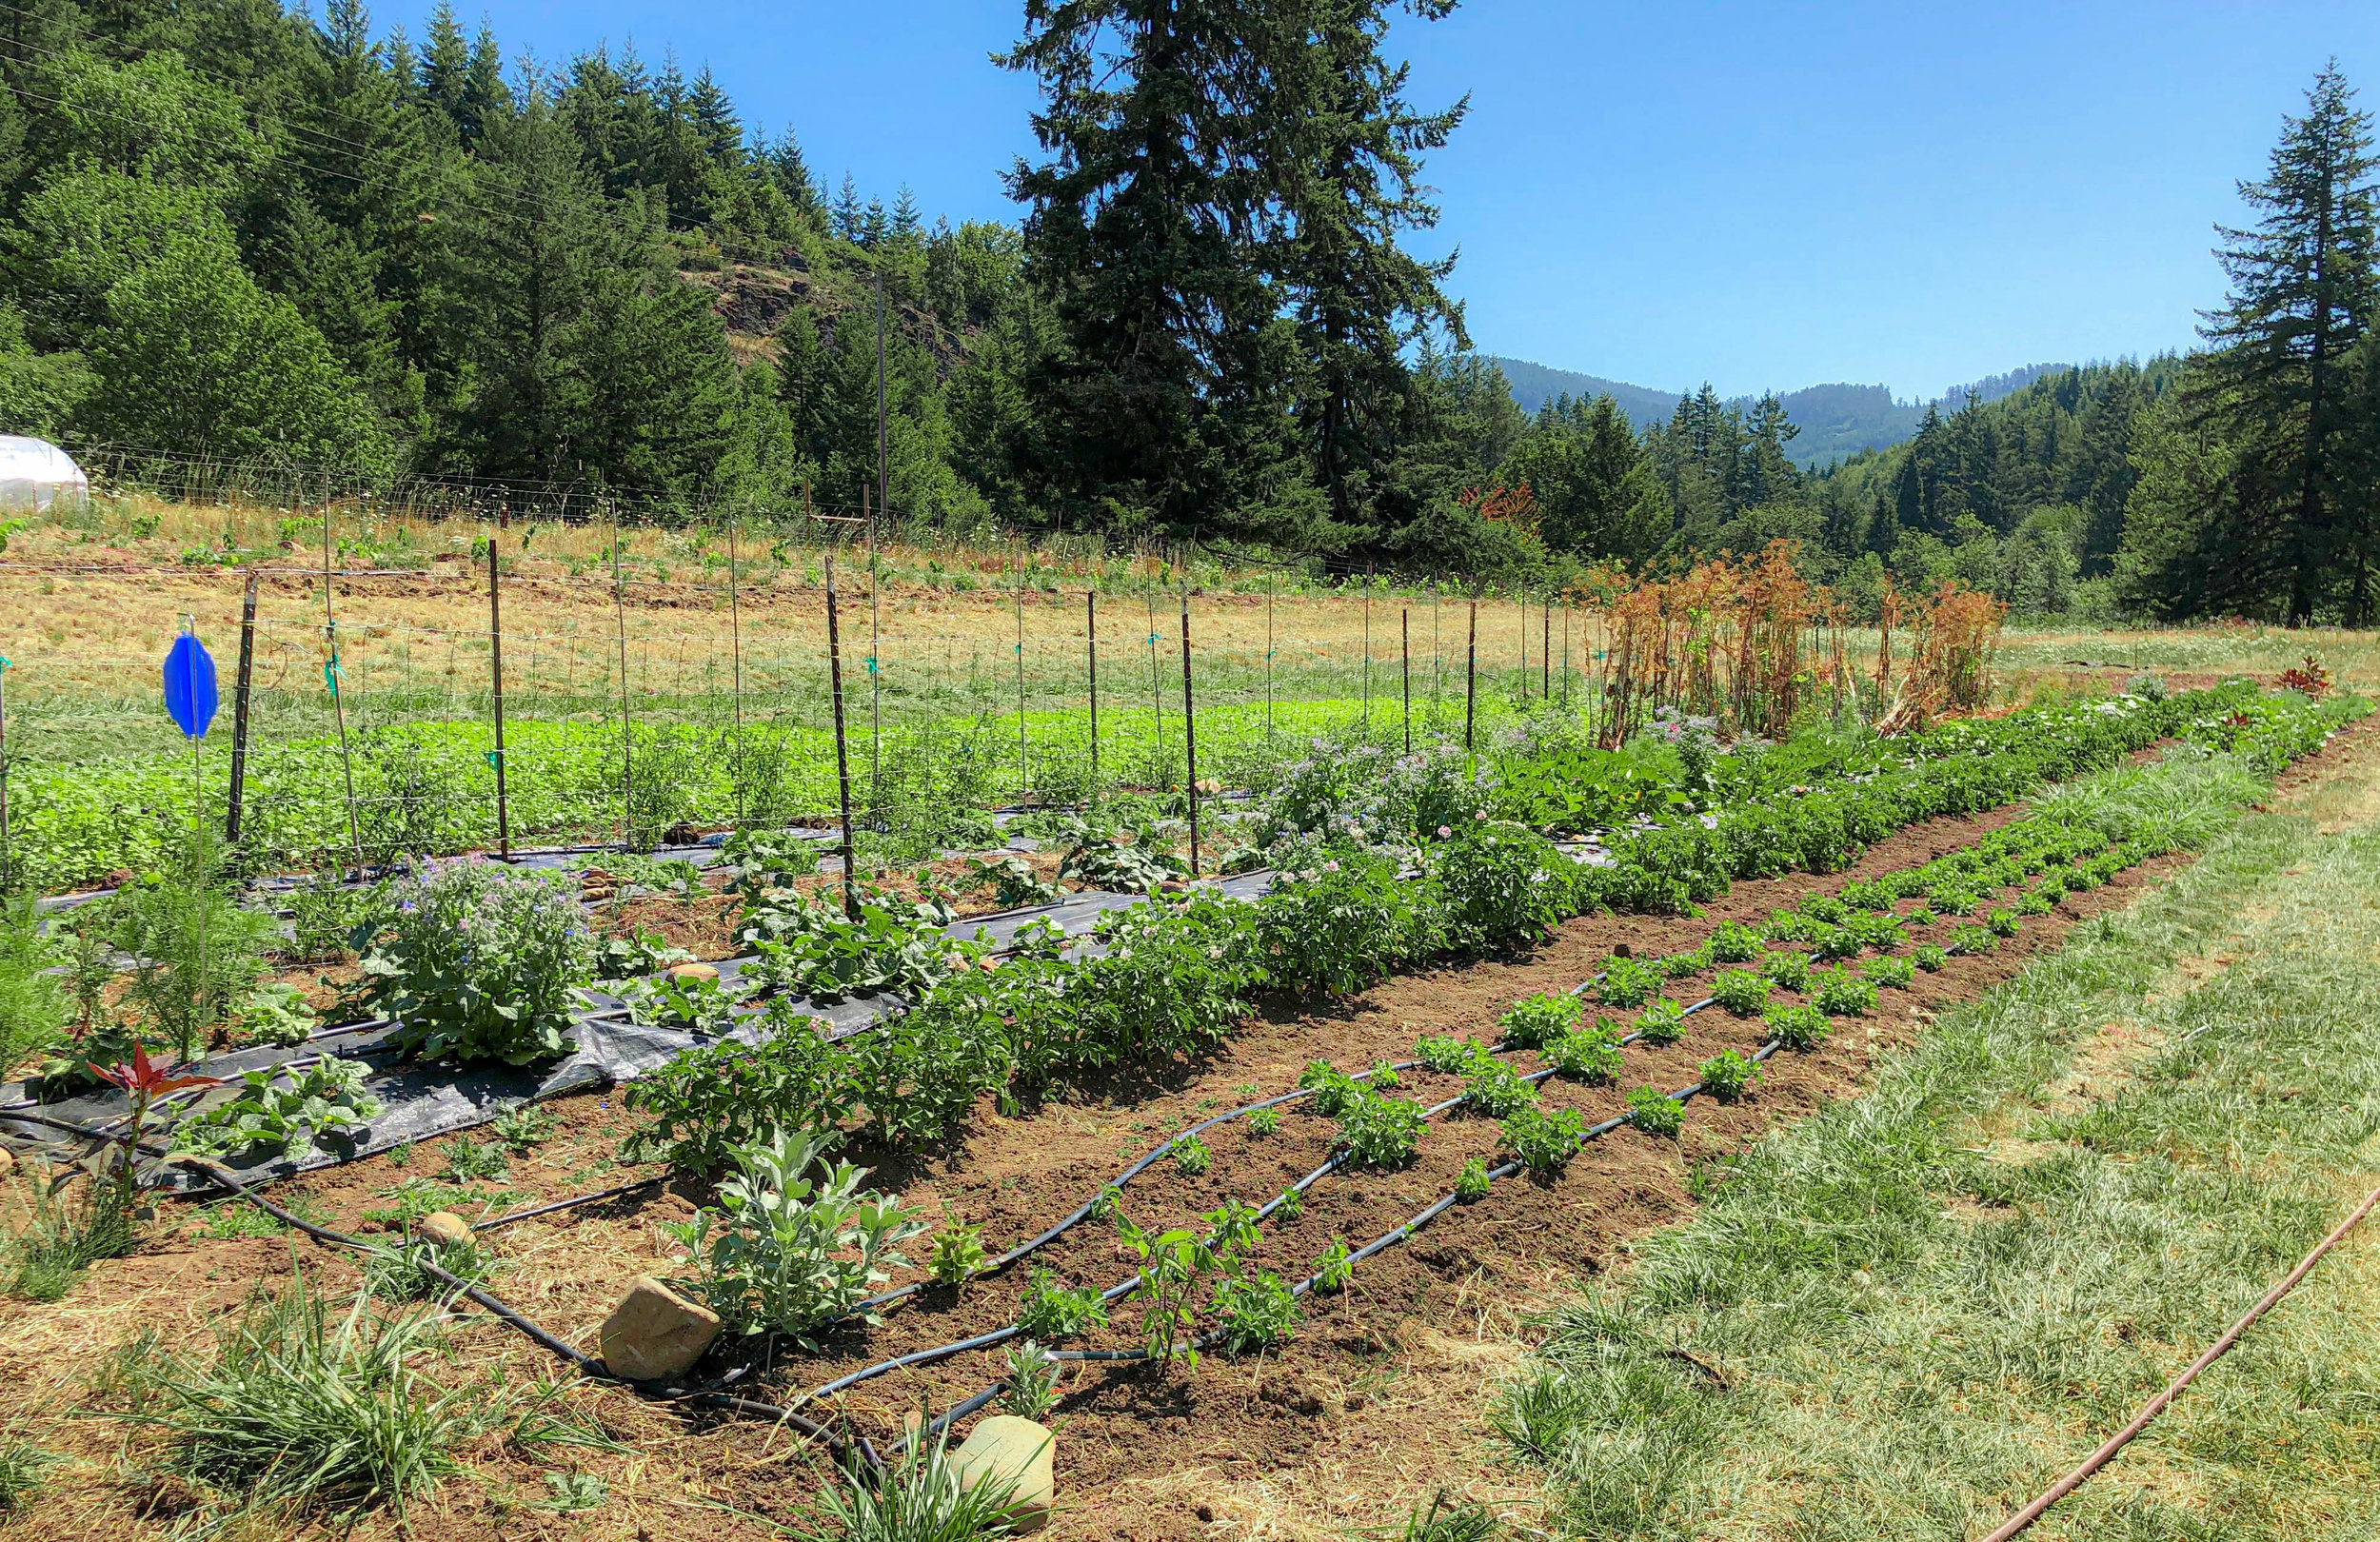 The plot pictured contains various herbs and vegetables.